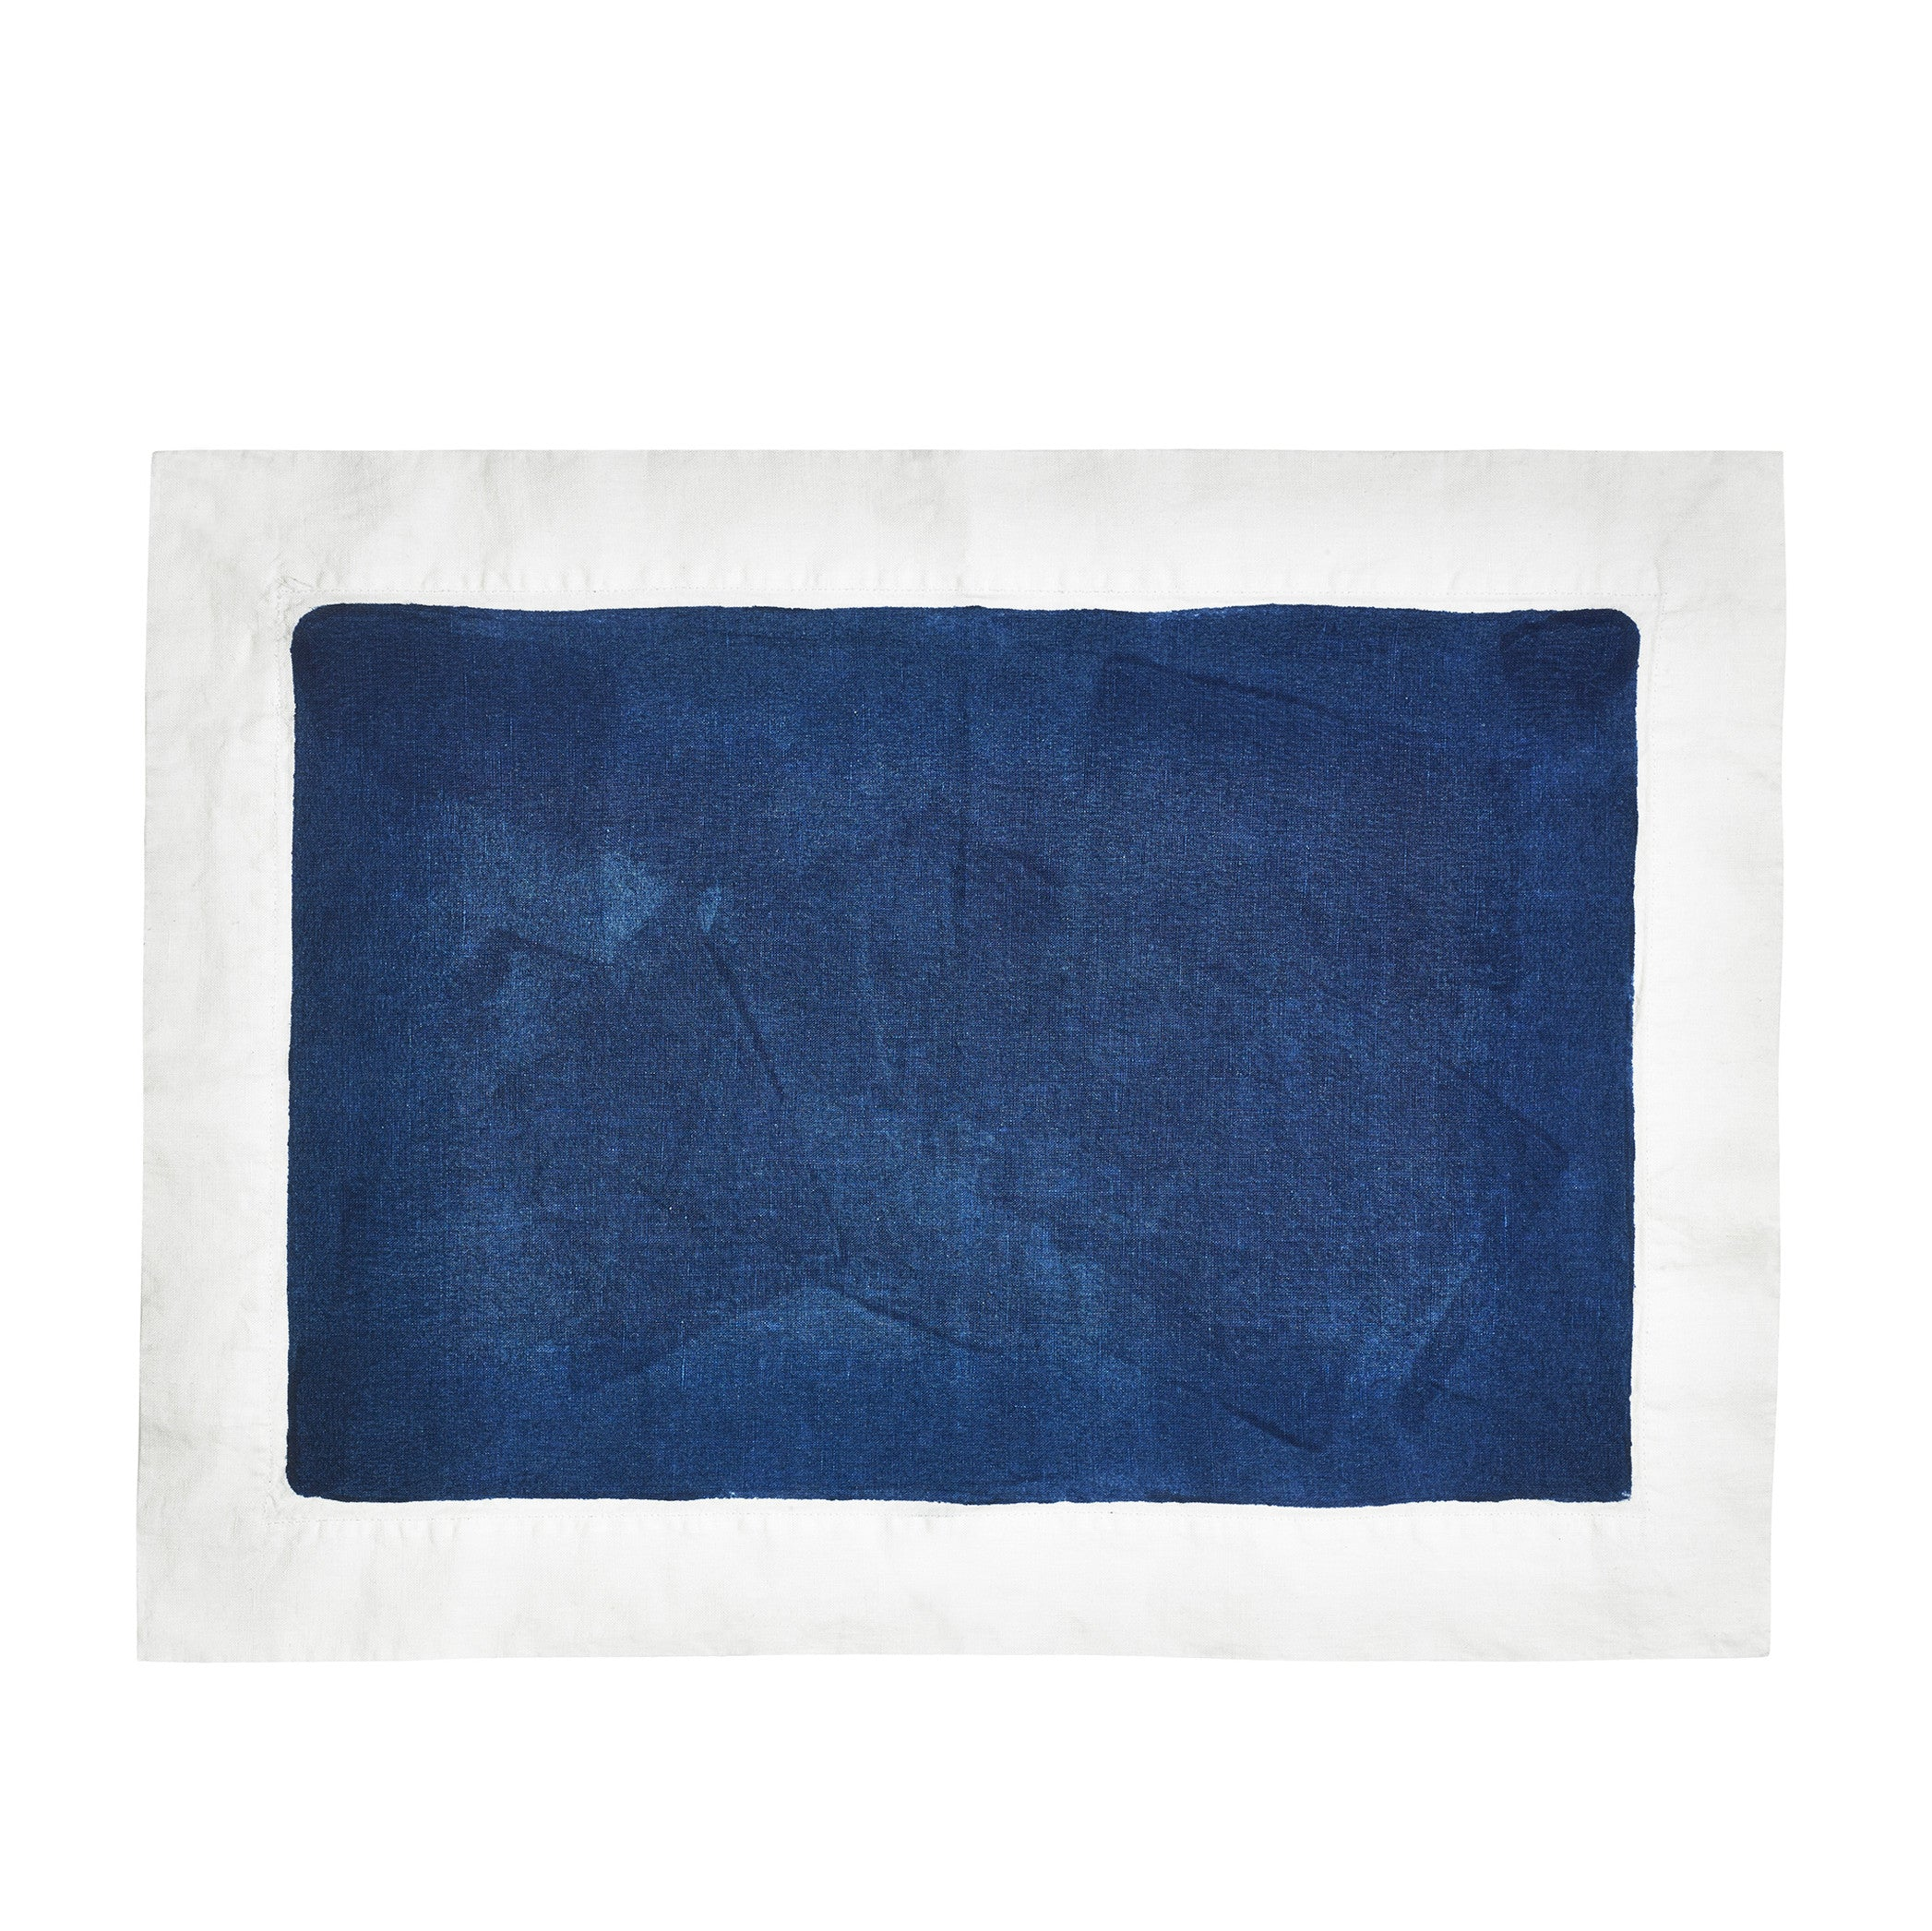 Full Field Linen Placemat in Midnight Blue